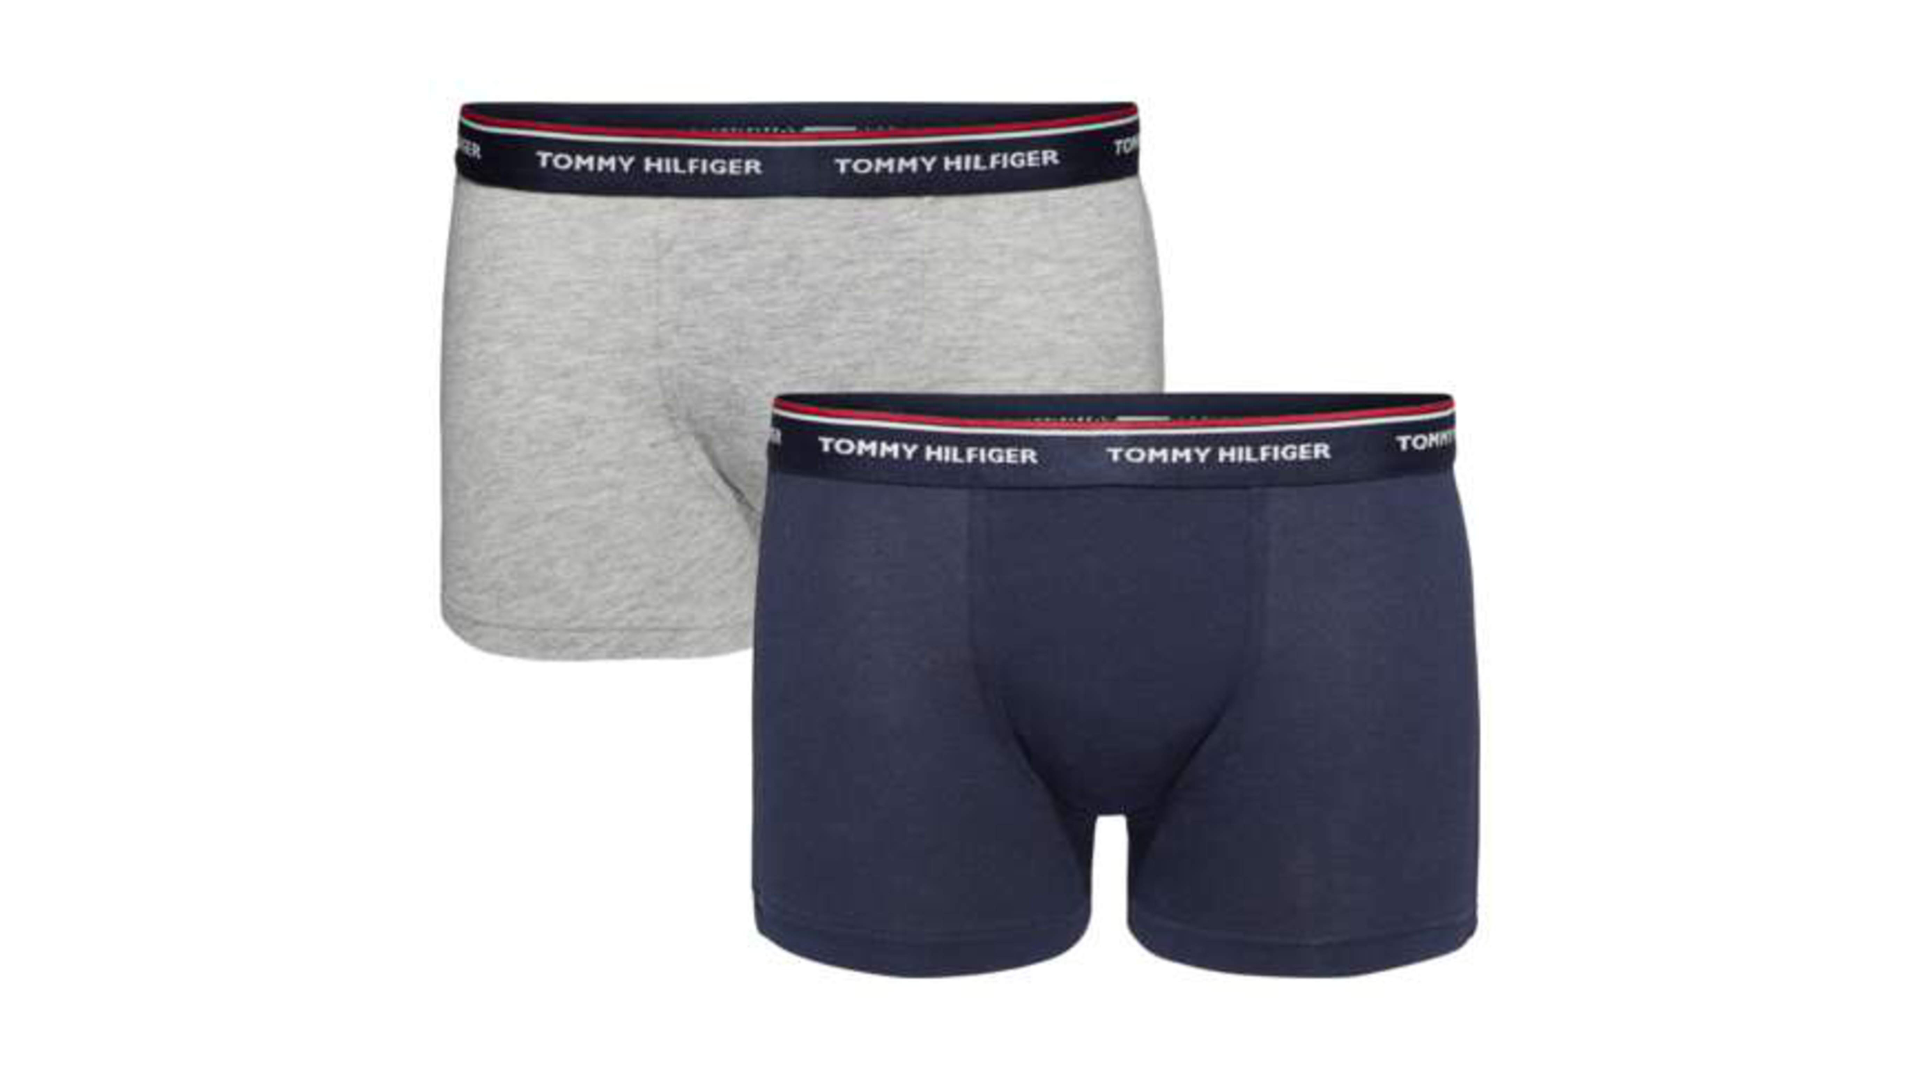 4c7c2165ee1e Boys Tommy Hilfiger Boxer Shorts/ Trunks 'Premium Essentials' (2 ...